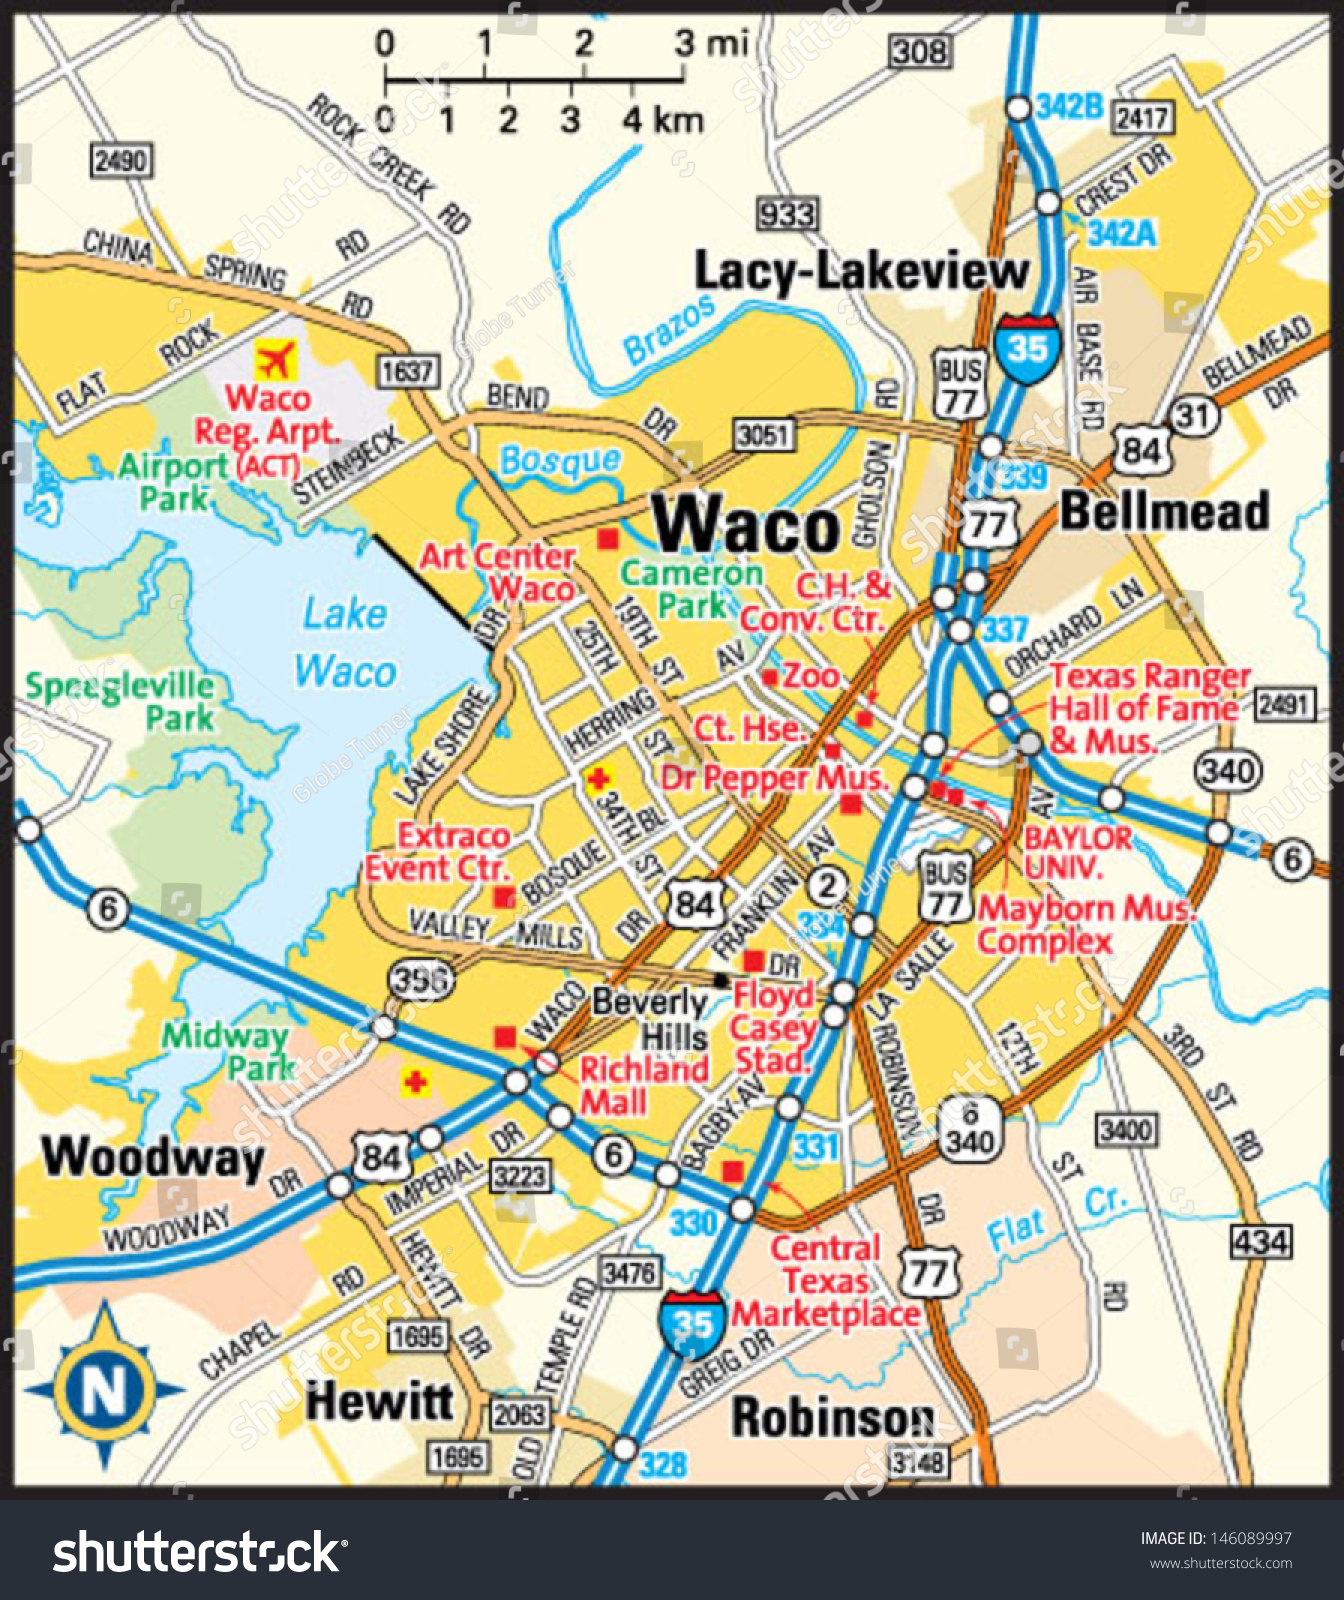 Waco Map And Travel Information   Download Free Waco Map - Map Of Waco Texas And Surrounding Area